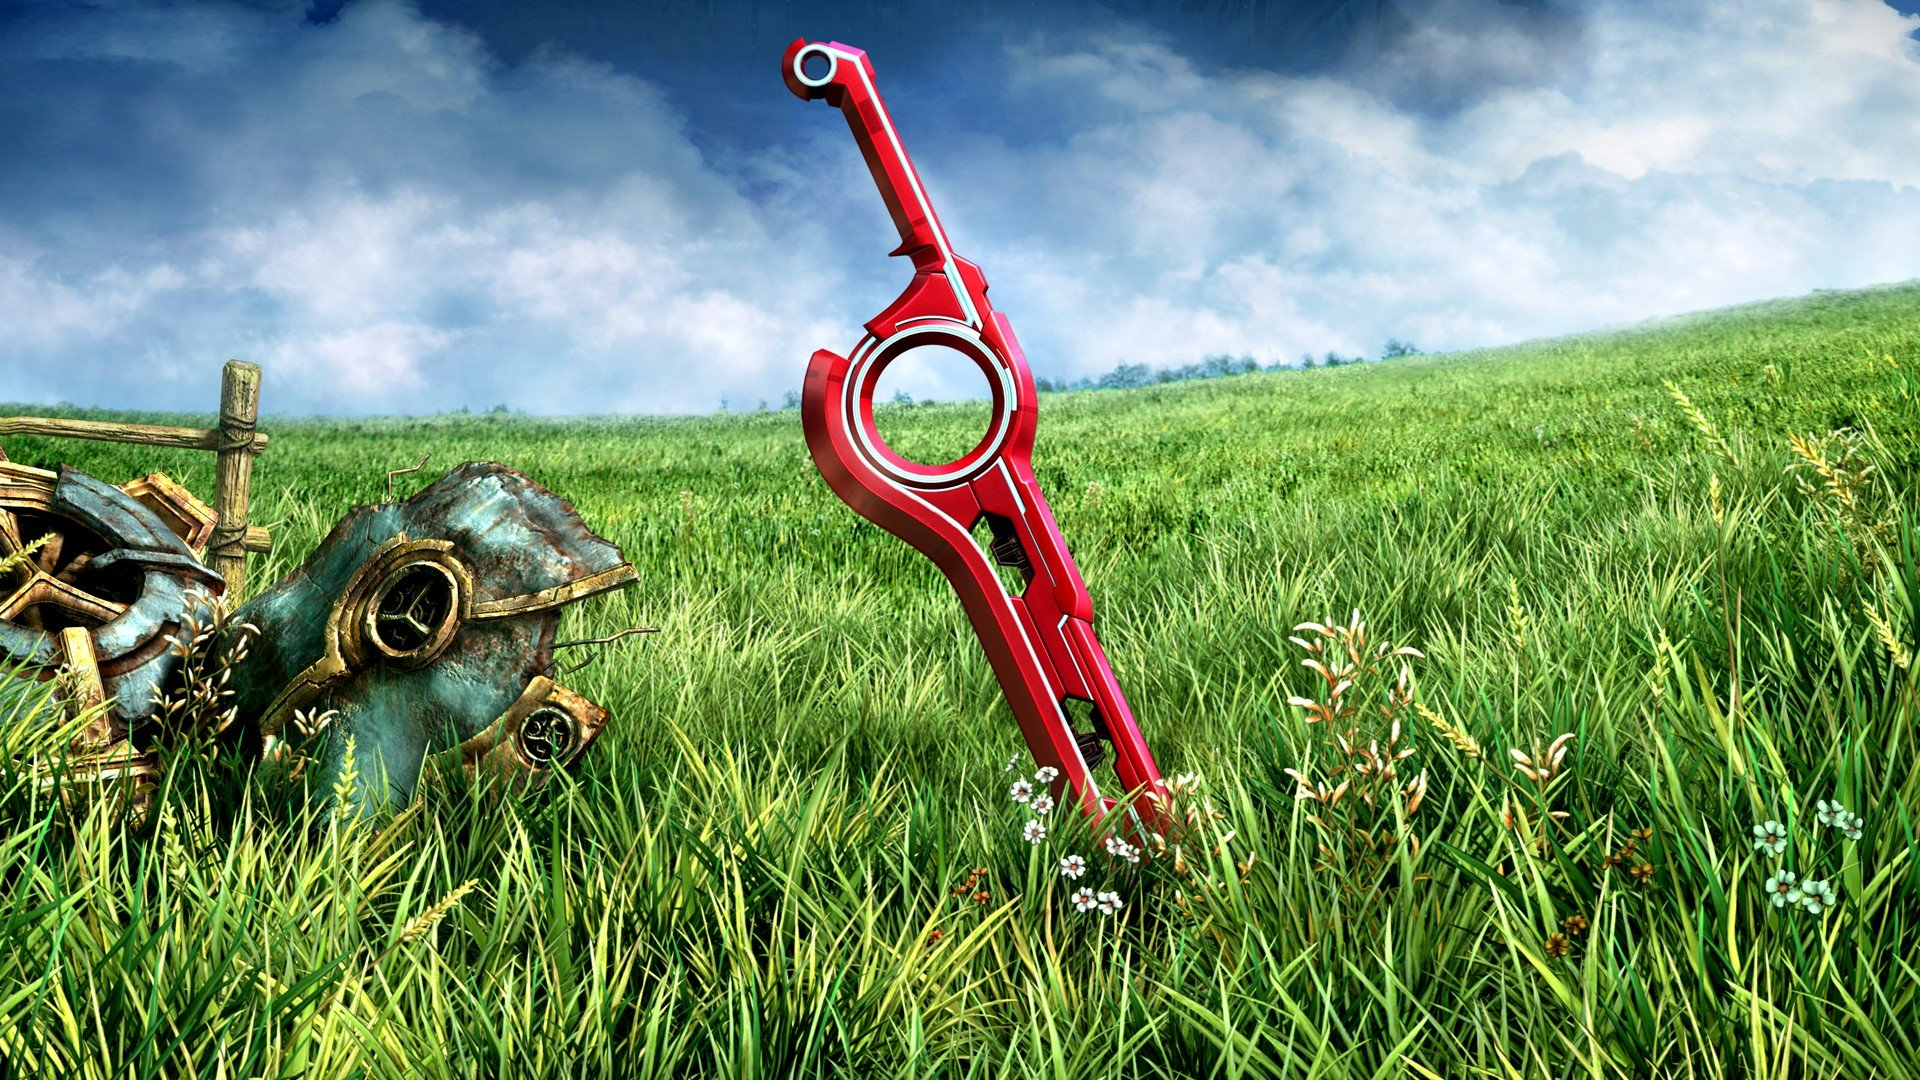 Xenoblade chronicles 3ds download size chart